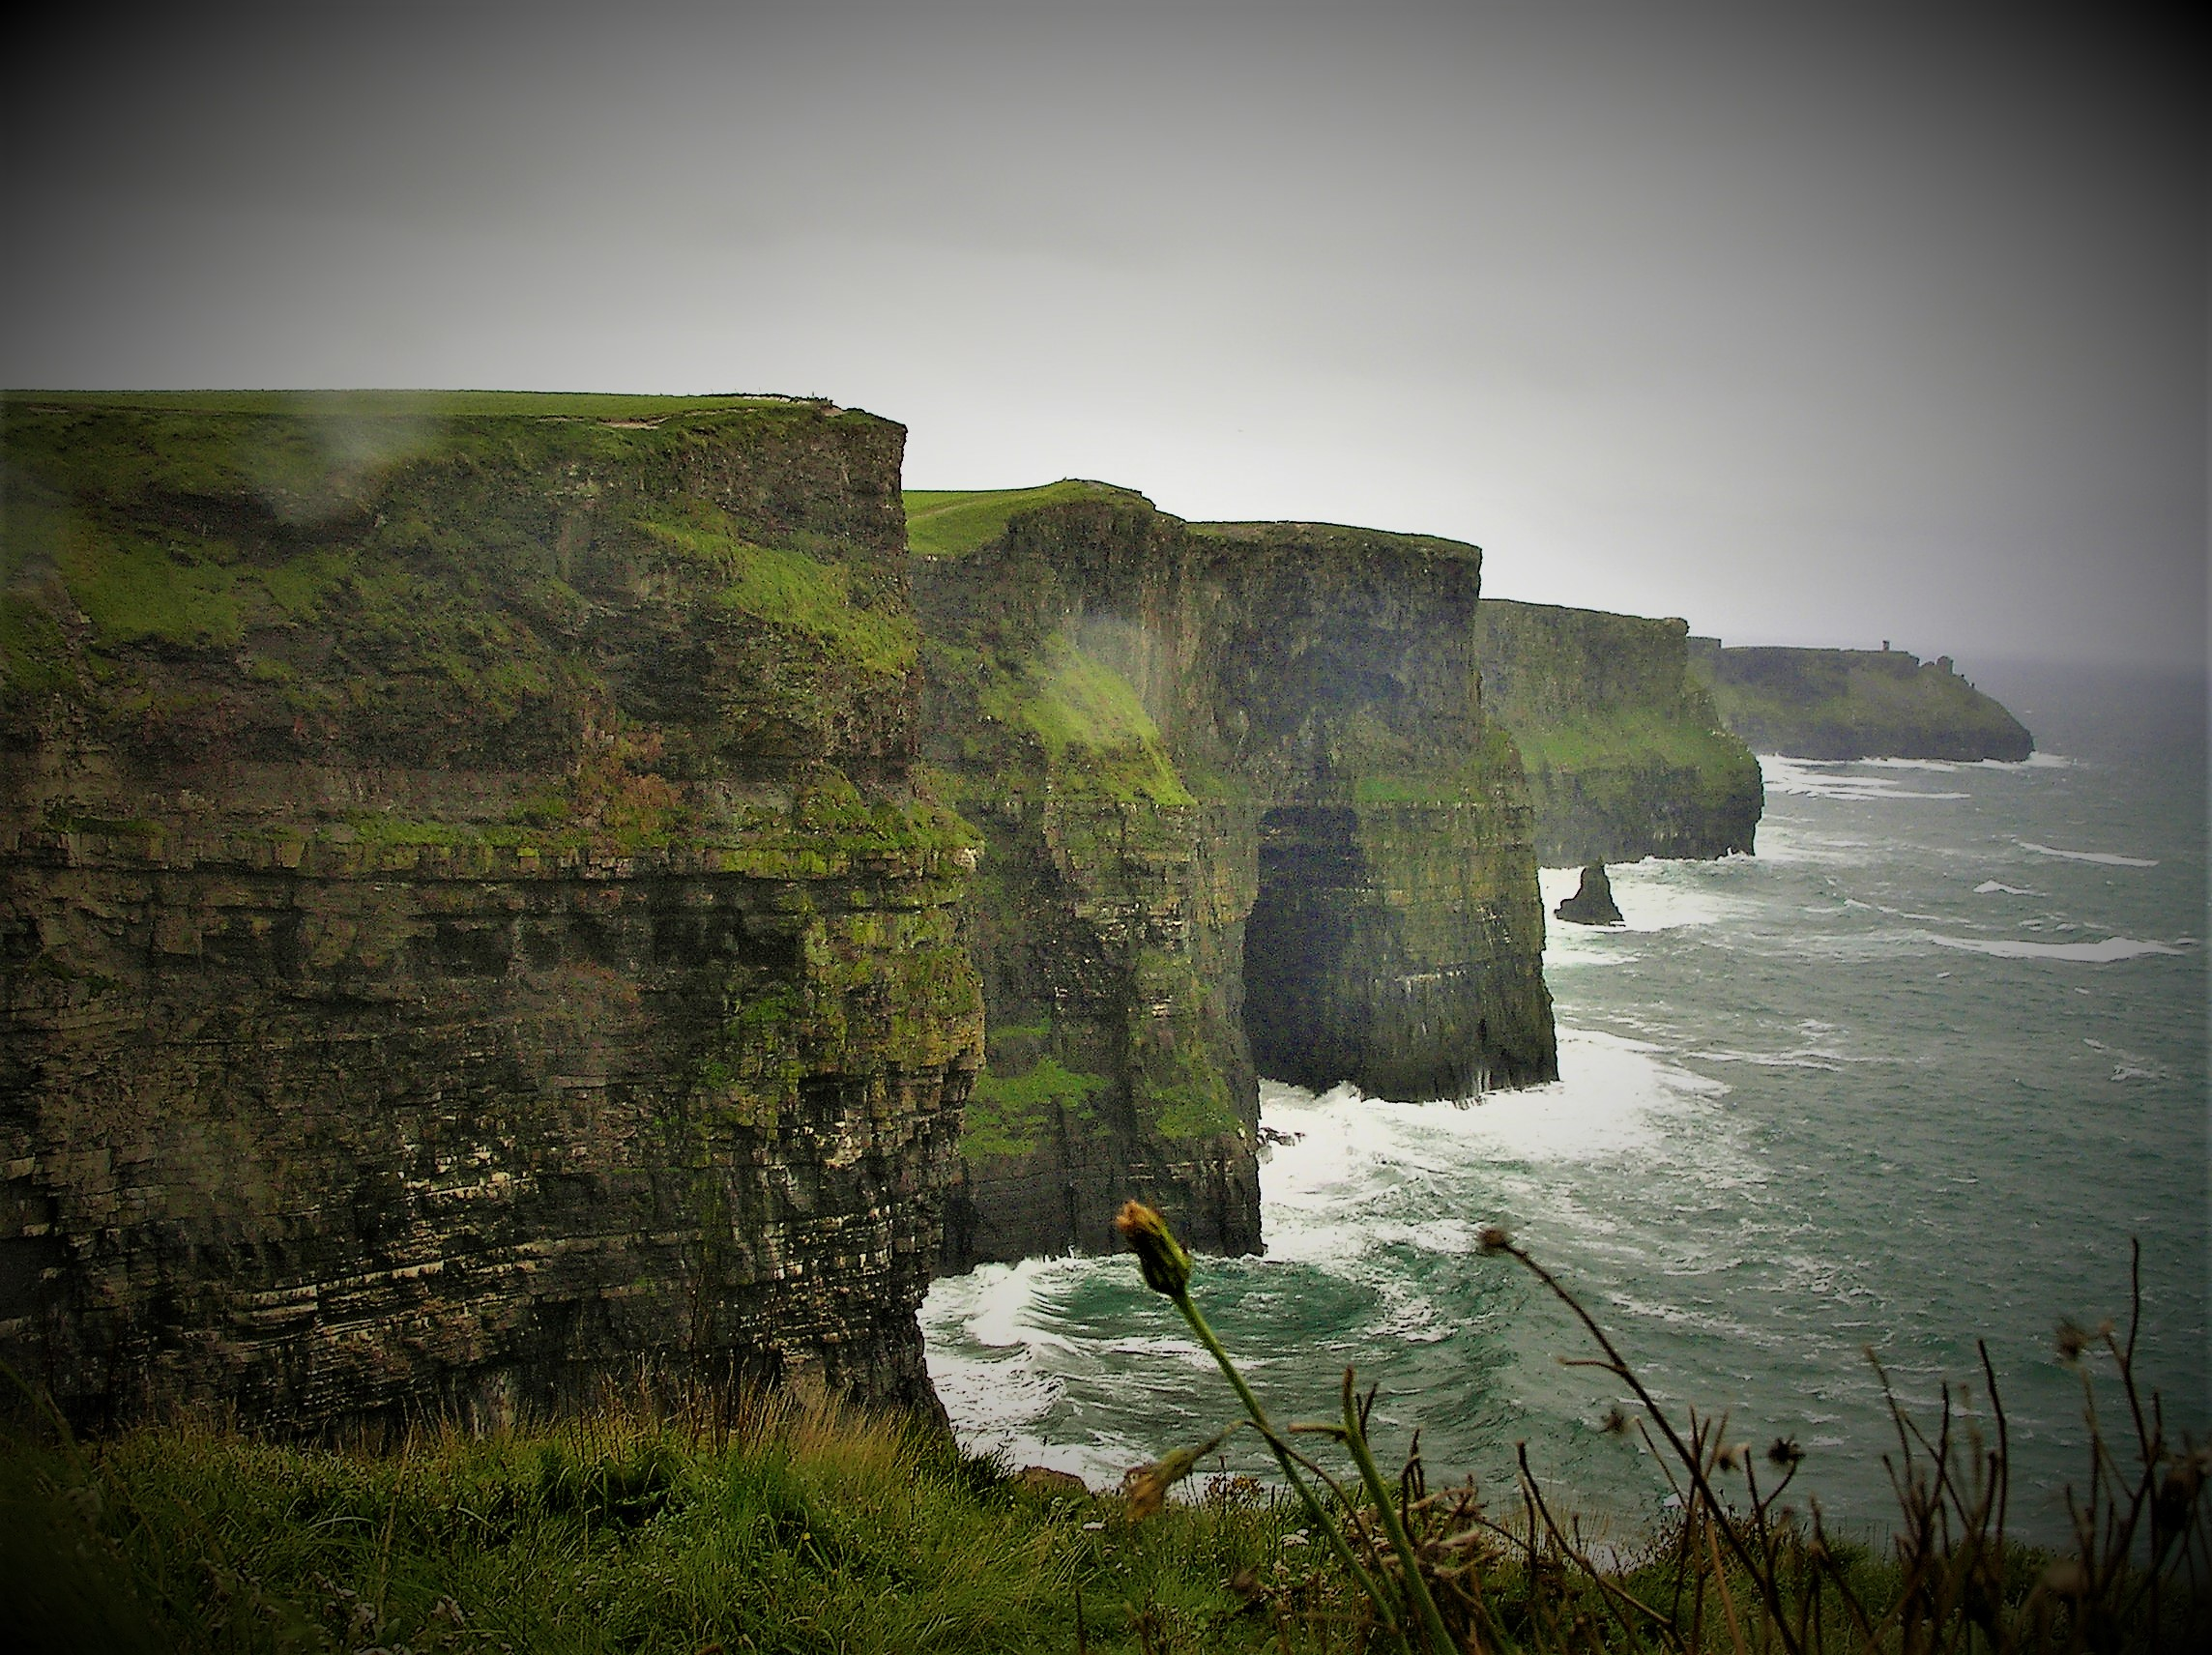 The Cliffs of Moher - Republic of Ireland - 1.jpg